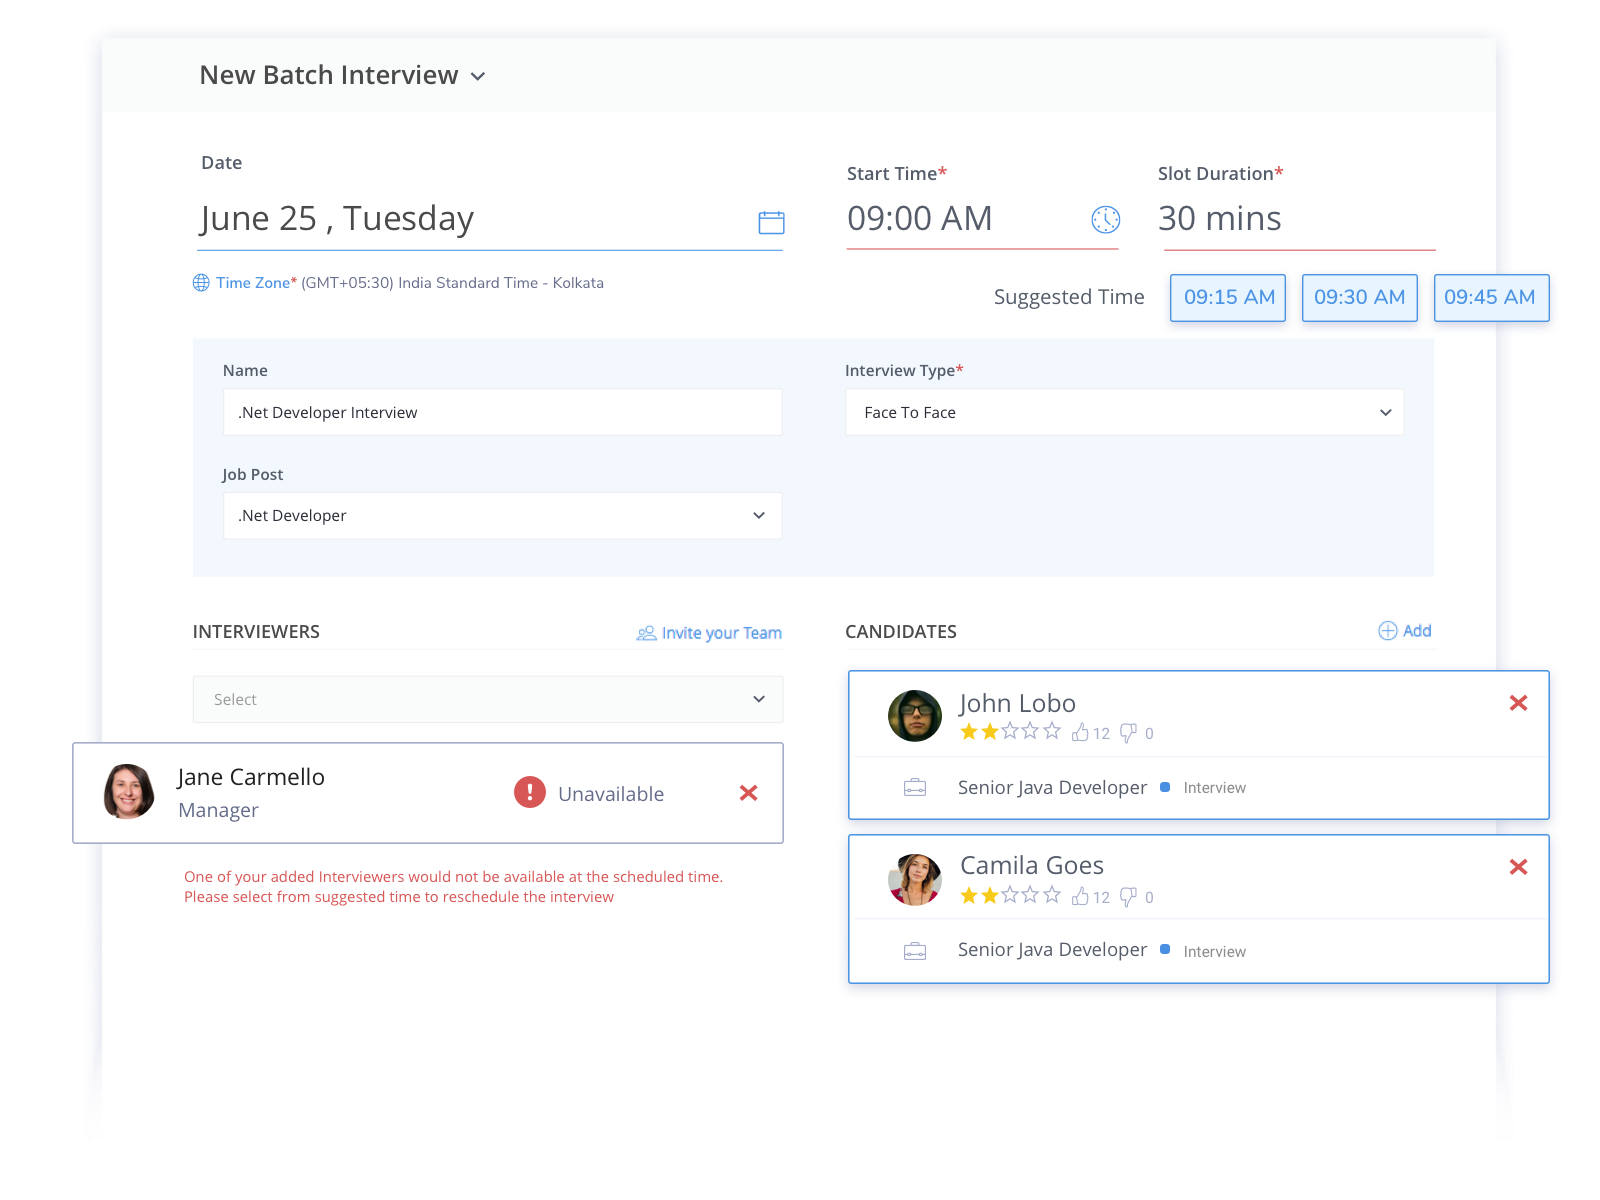 Schedule interviews seamlessly with Smart Interview Scheduler. You can connect your account with Google/Microsoft calendar and get notified about the best interview times at the time of interview creation.